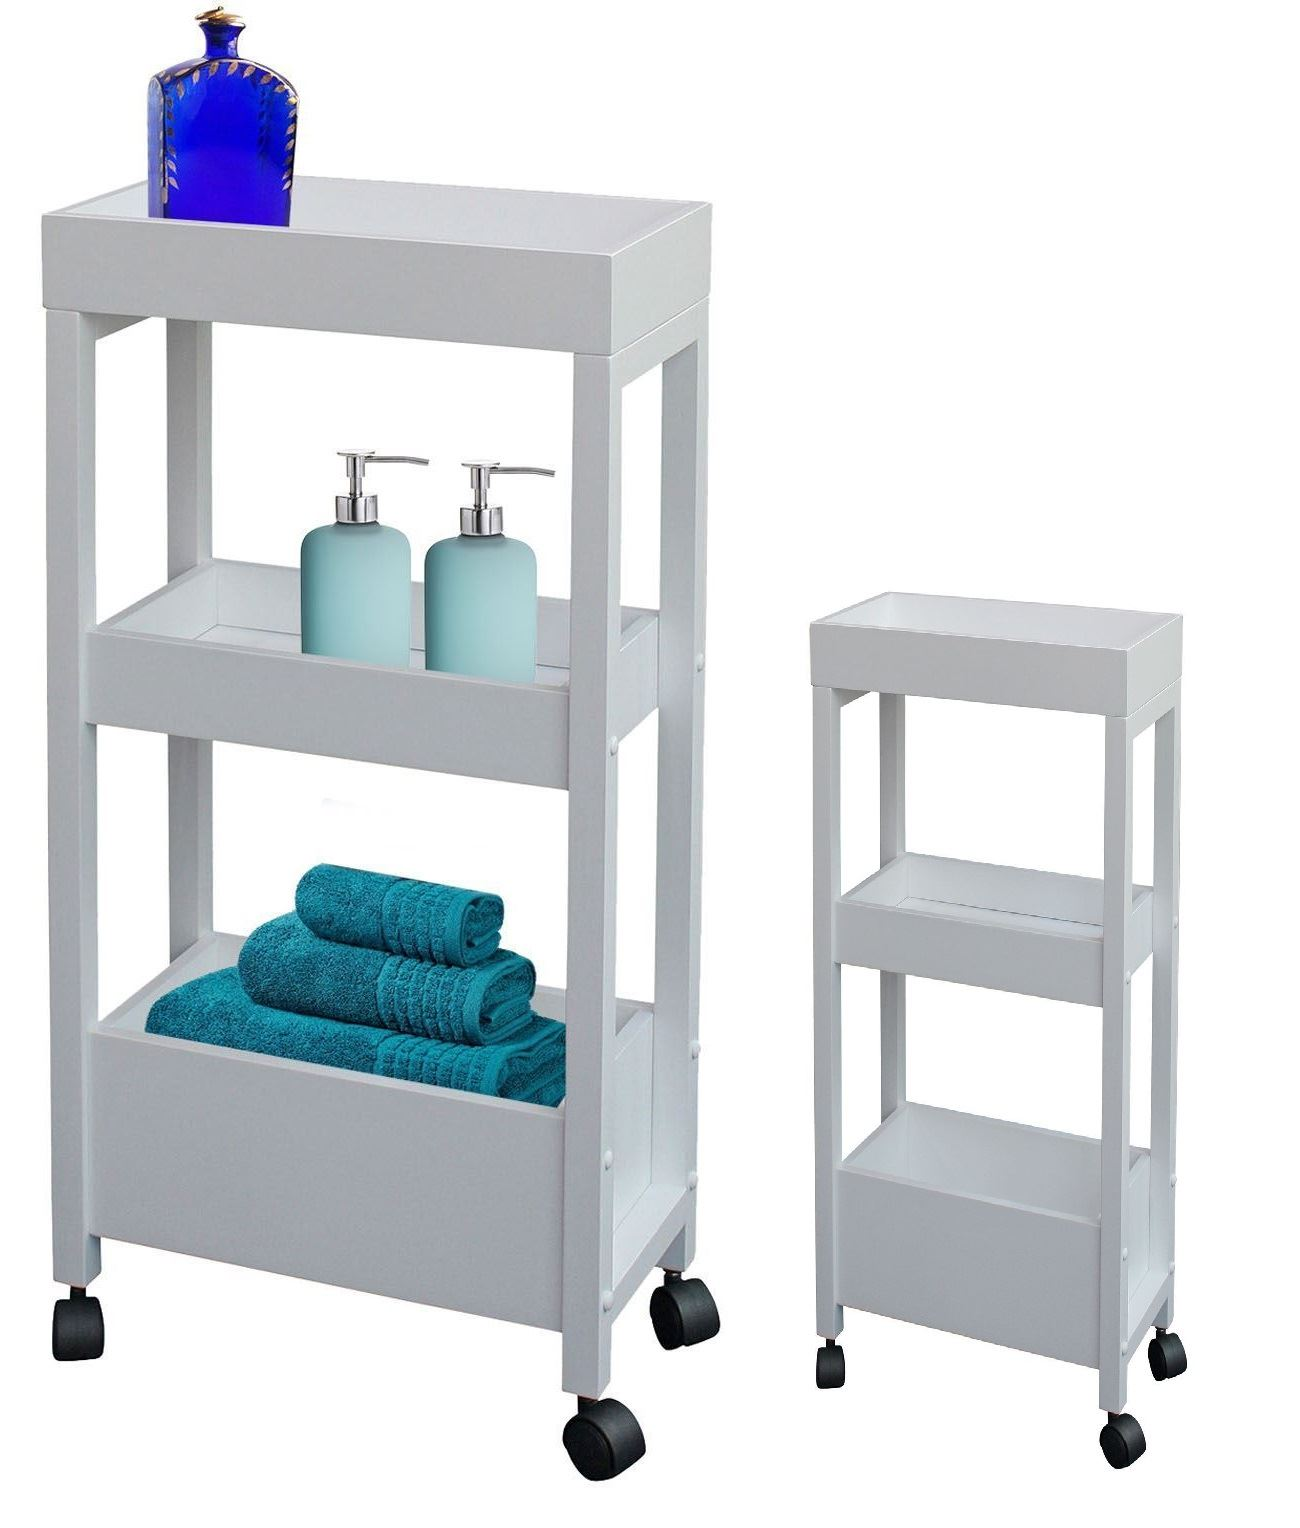 Three Tier Bathroom Stand: WHITE 3 TIER WOODEN STORAGE TROLLEY KITCHEN BATHROOM